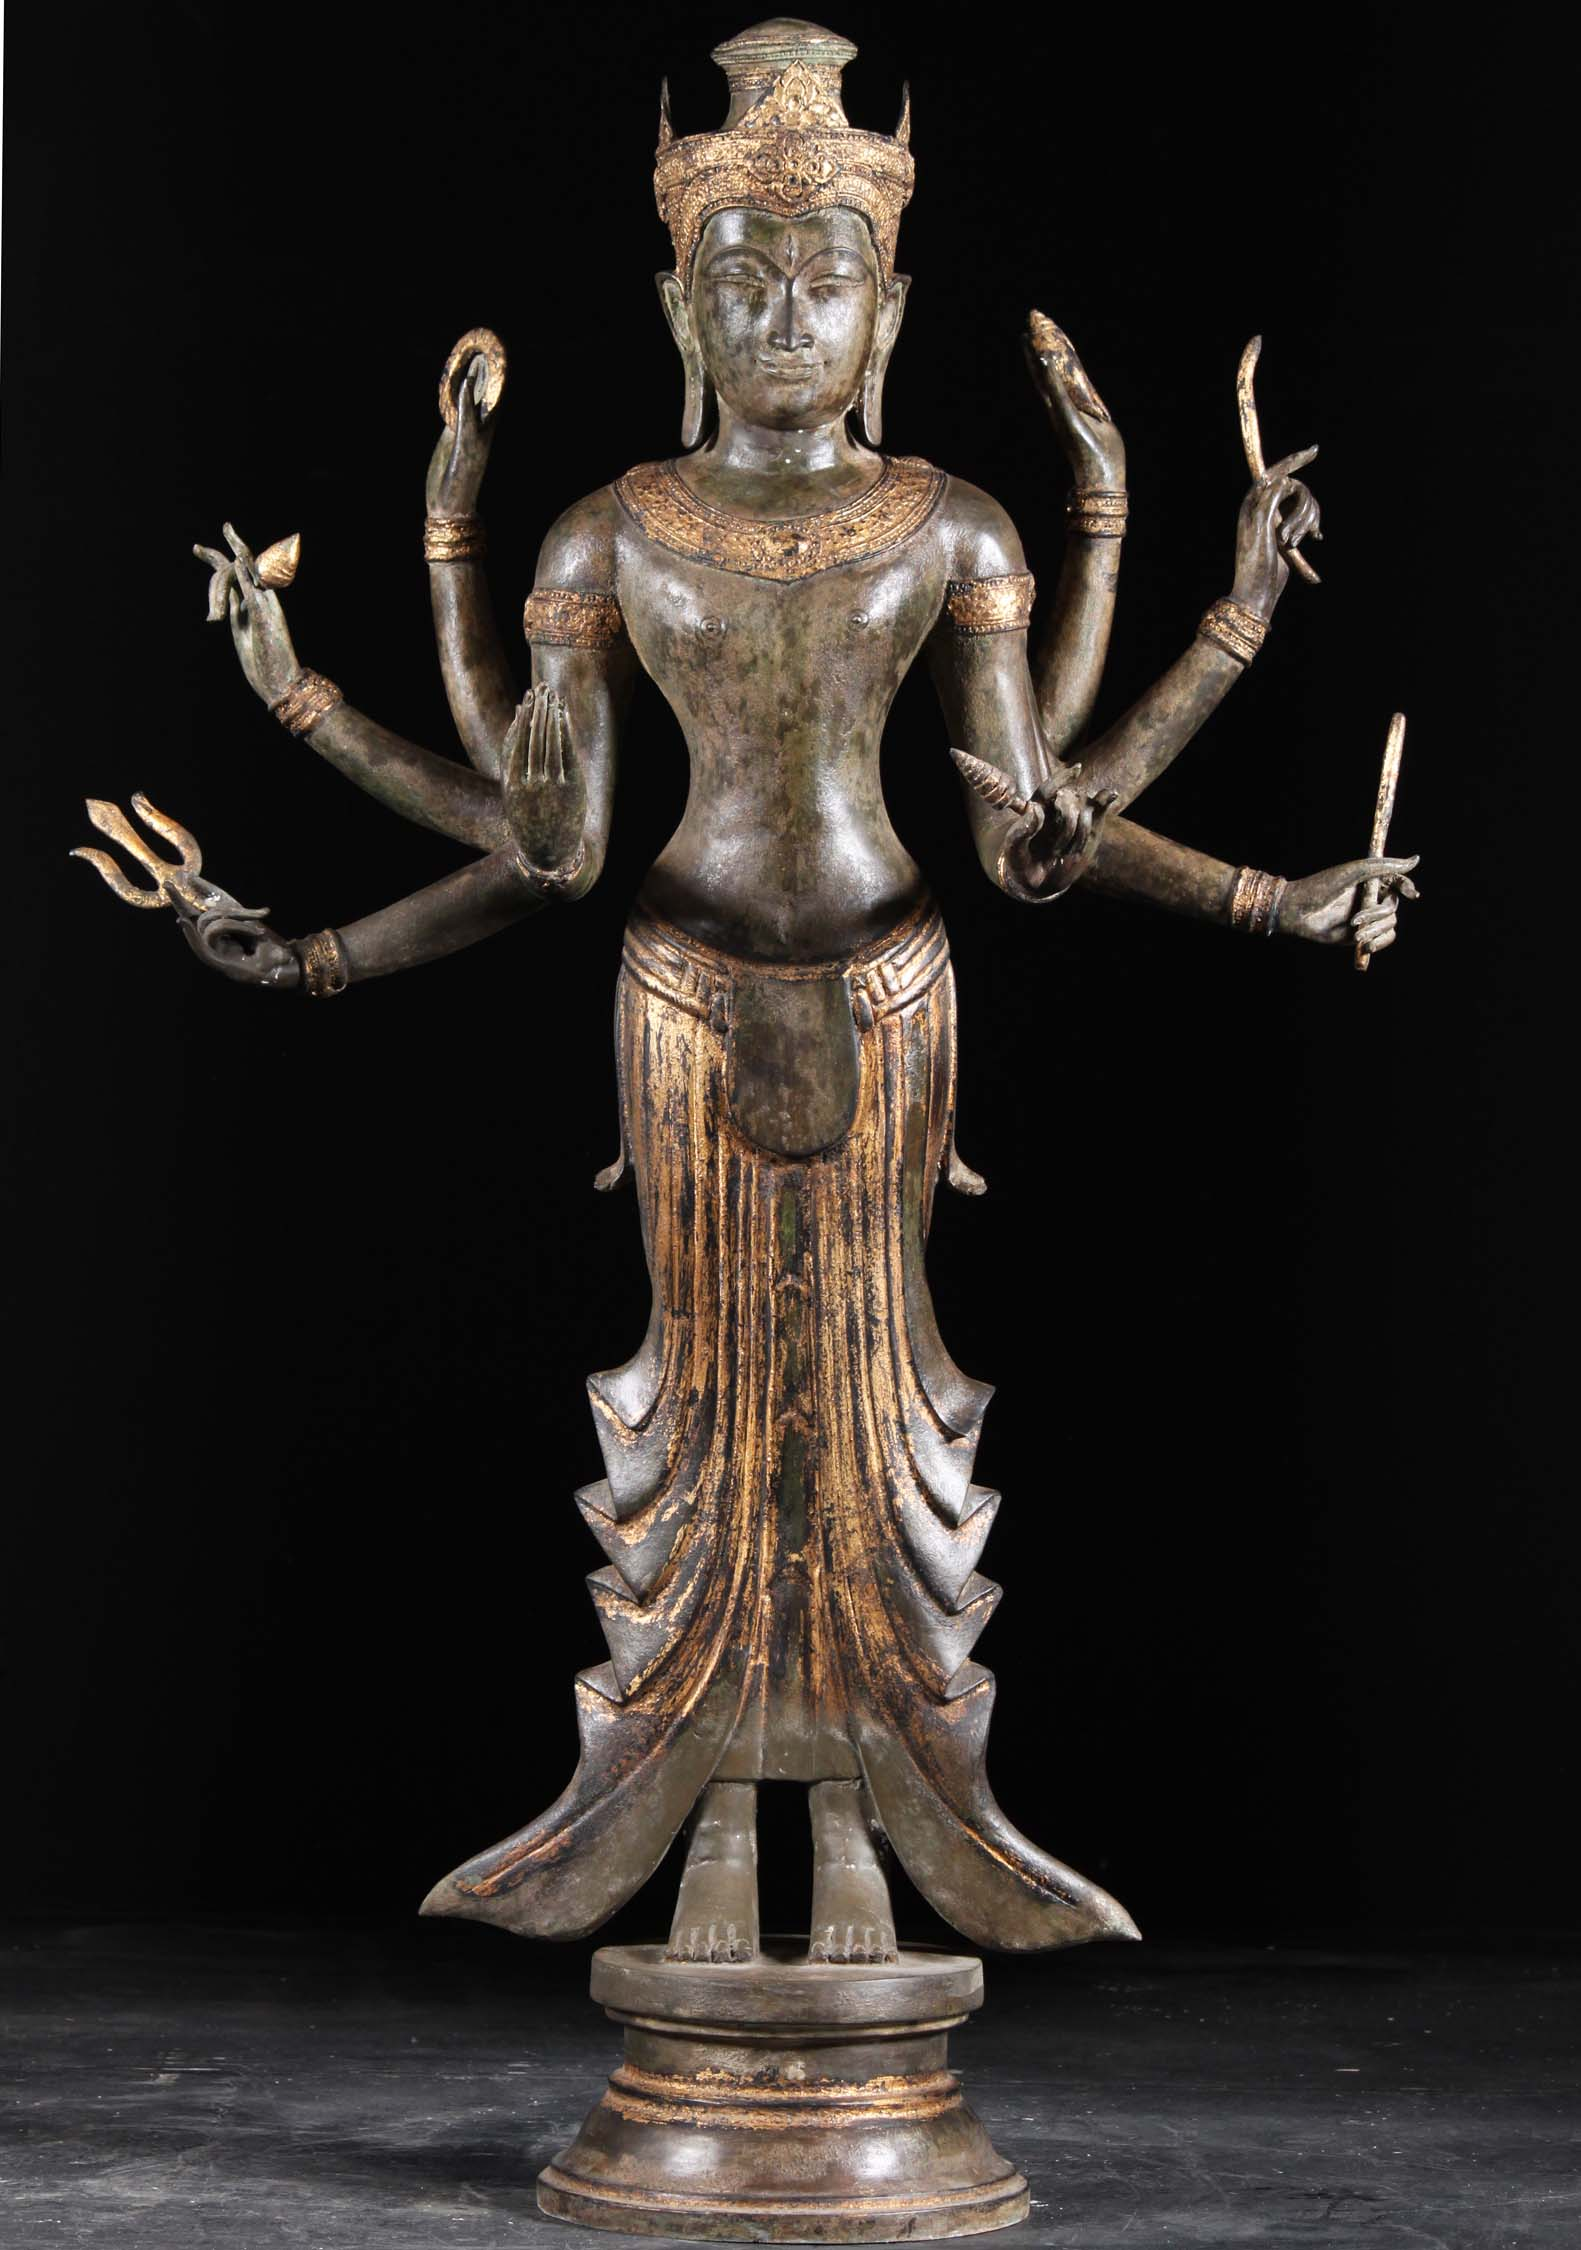 https://www.lotussculpture.com/mm5/graphics/00000001/1a-Vishnu-With-8-Arms-Statue.jpg